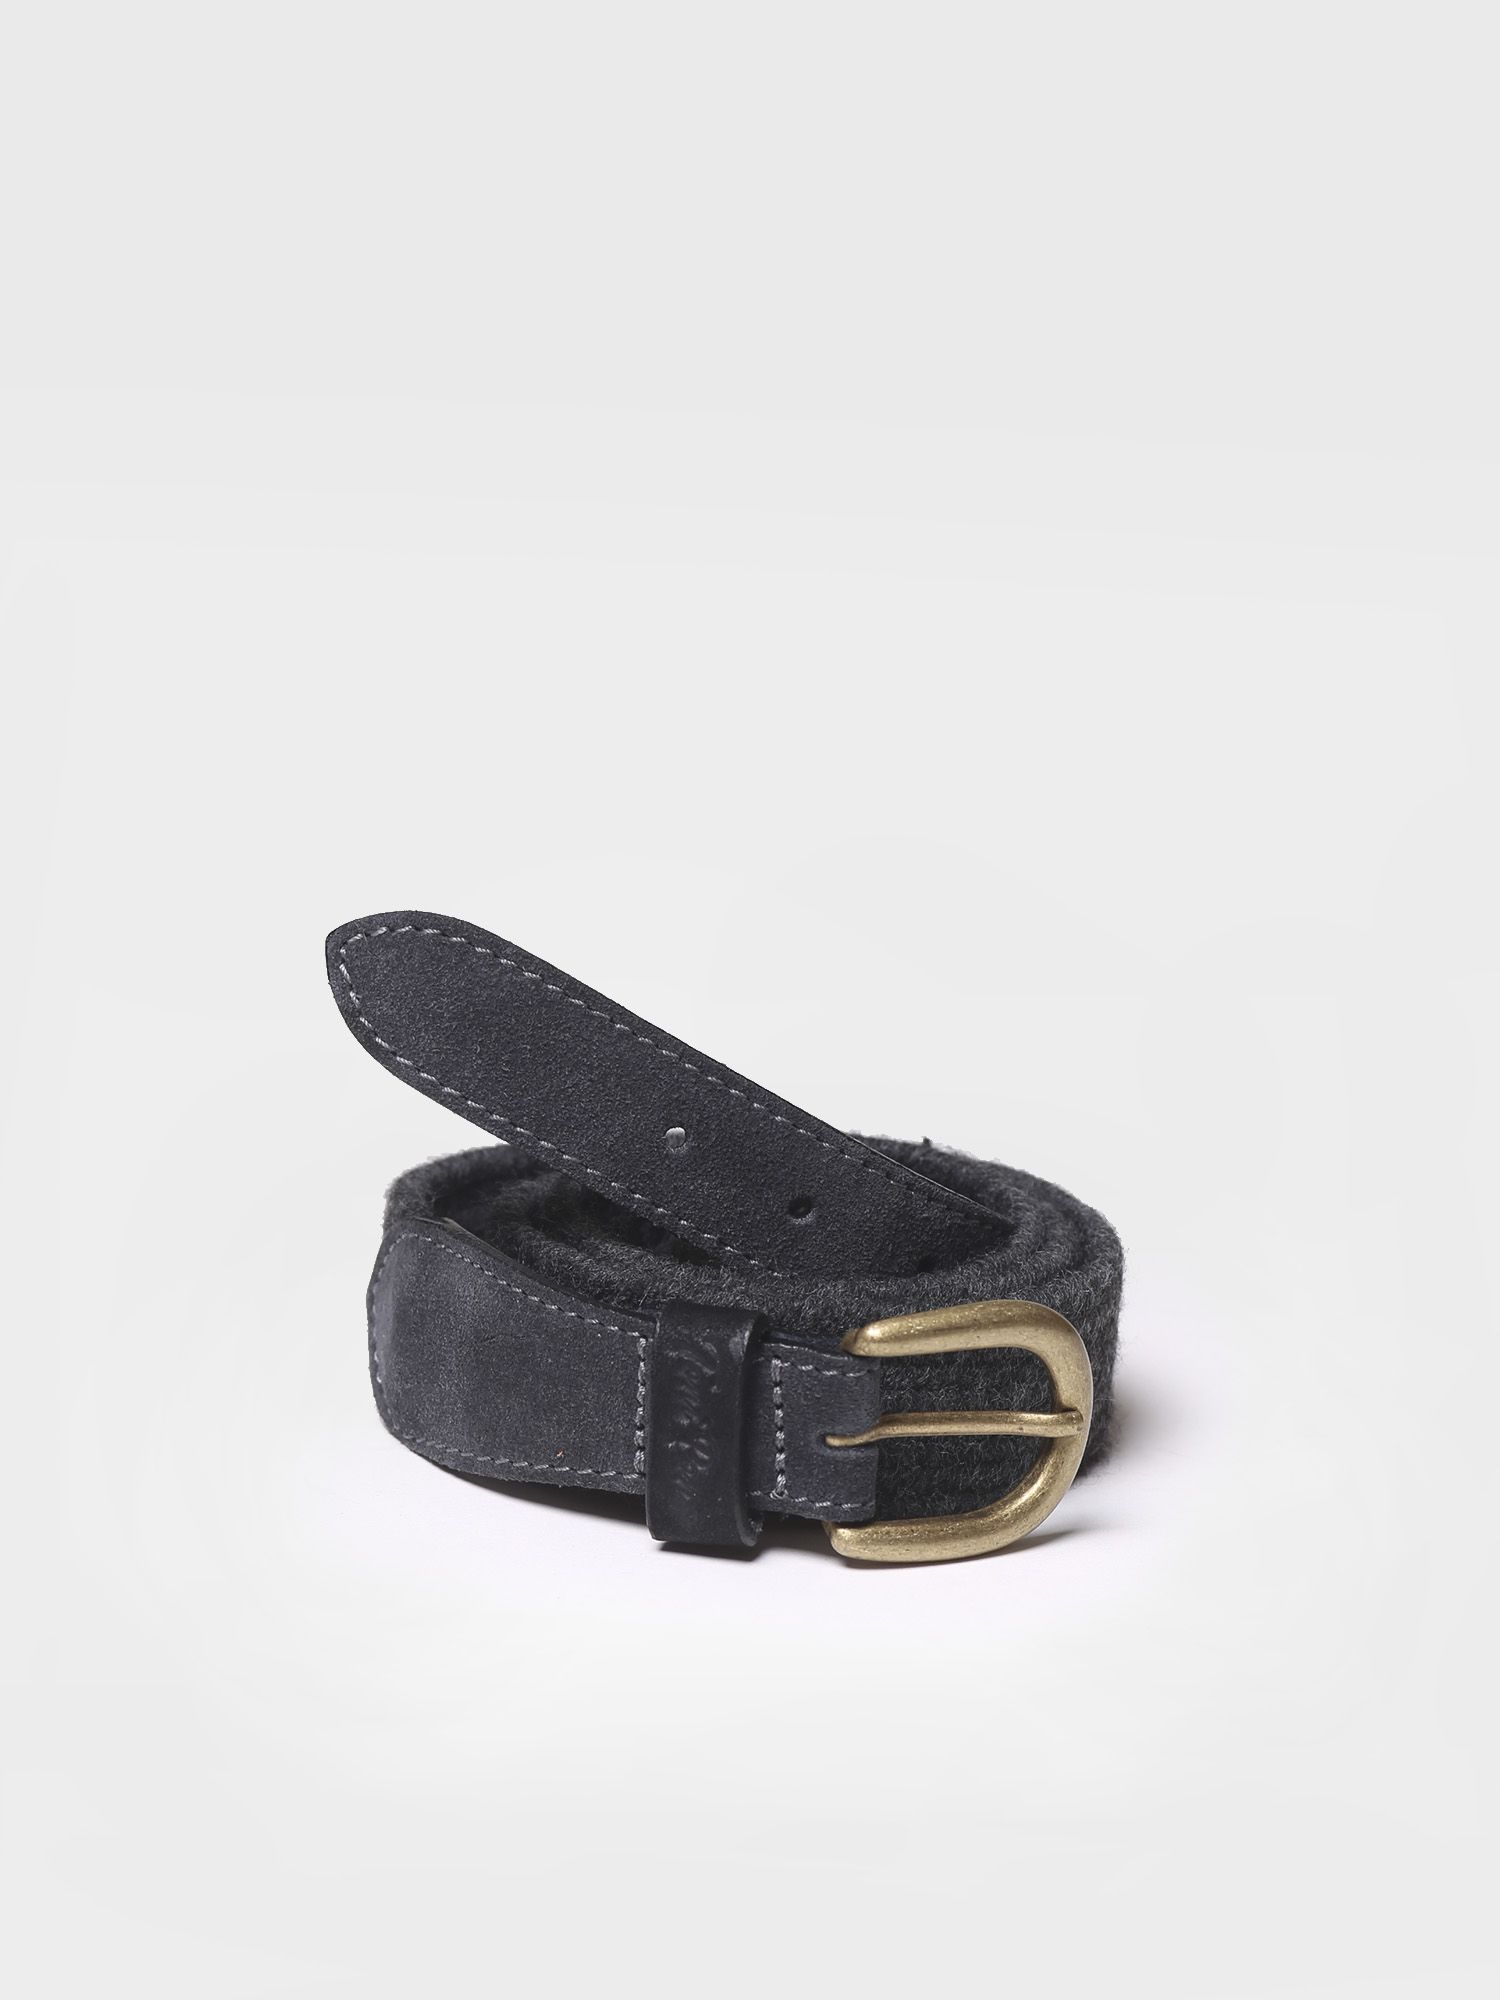 Belt in elastic fabric in grey shades - NALA